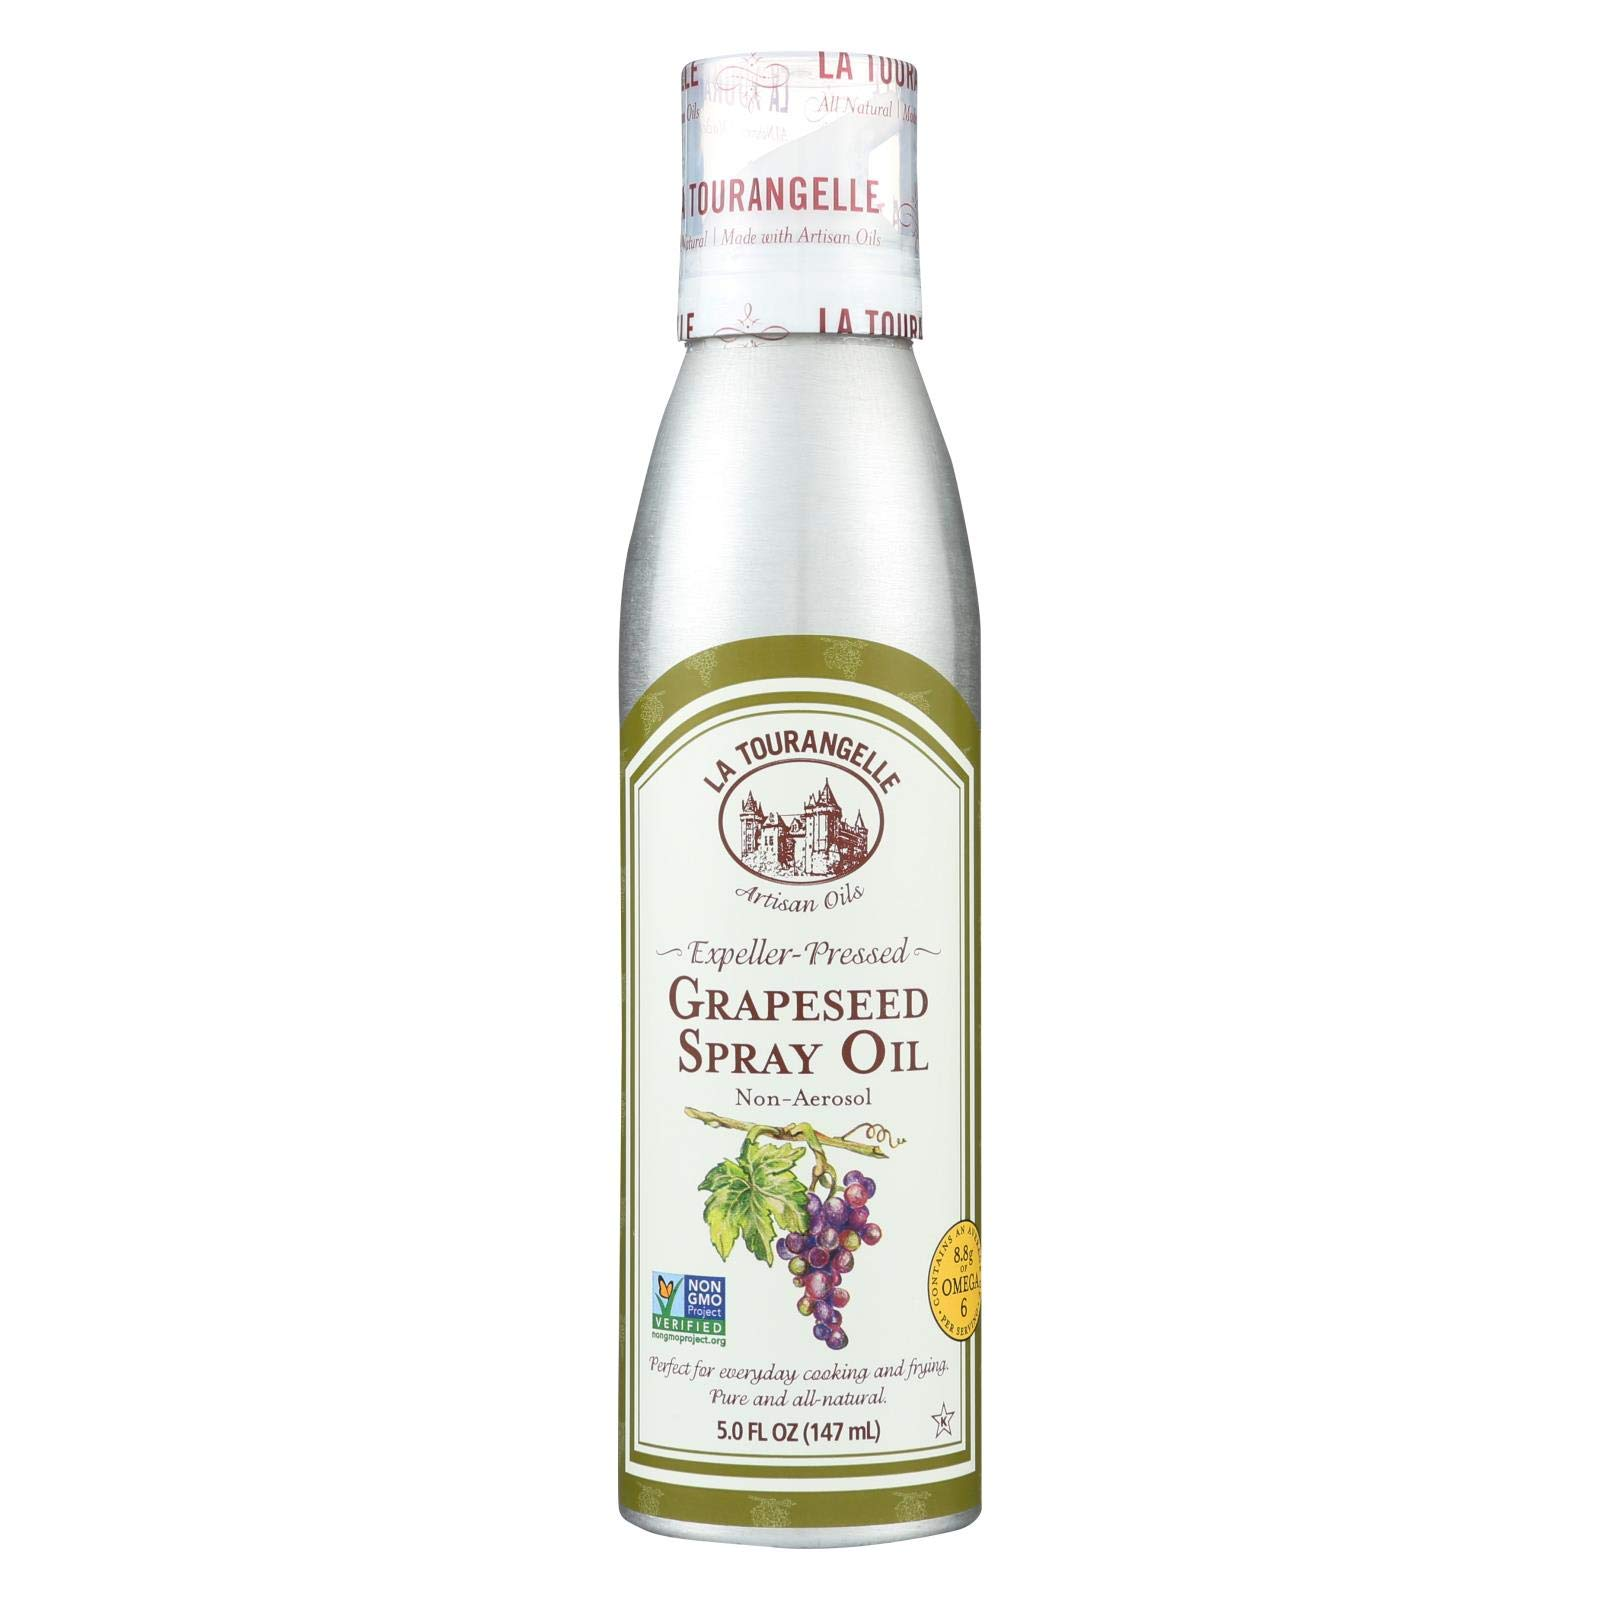 La Tourangelle Expeller Pressed Grapeseed Spray Oil, 5 Fluid Ounce - 6 per case. by La Tourangelle